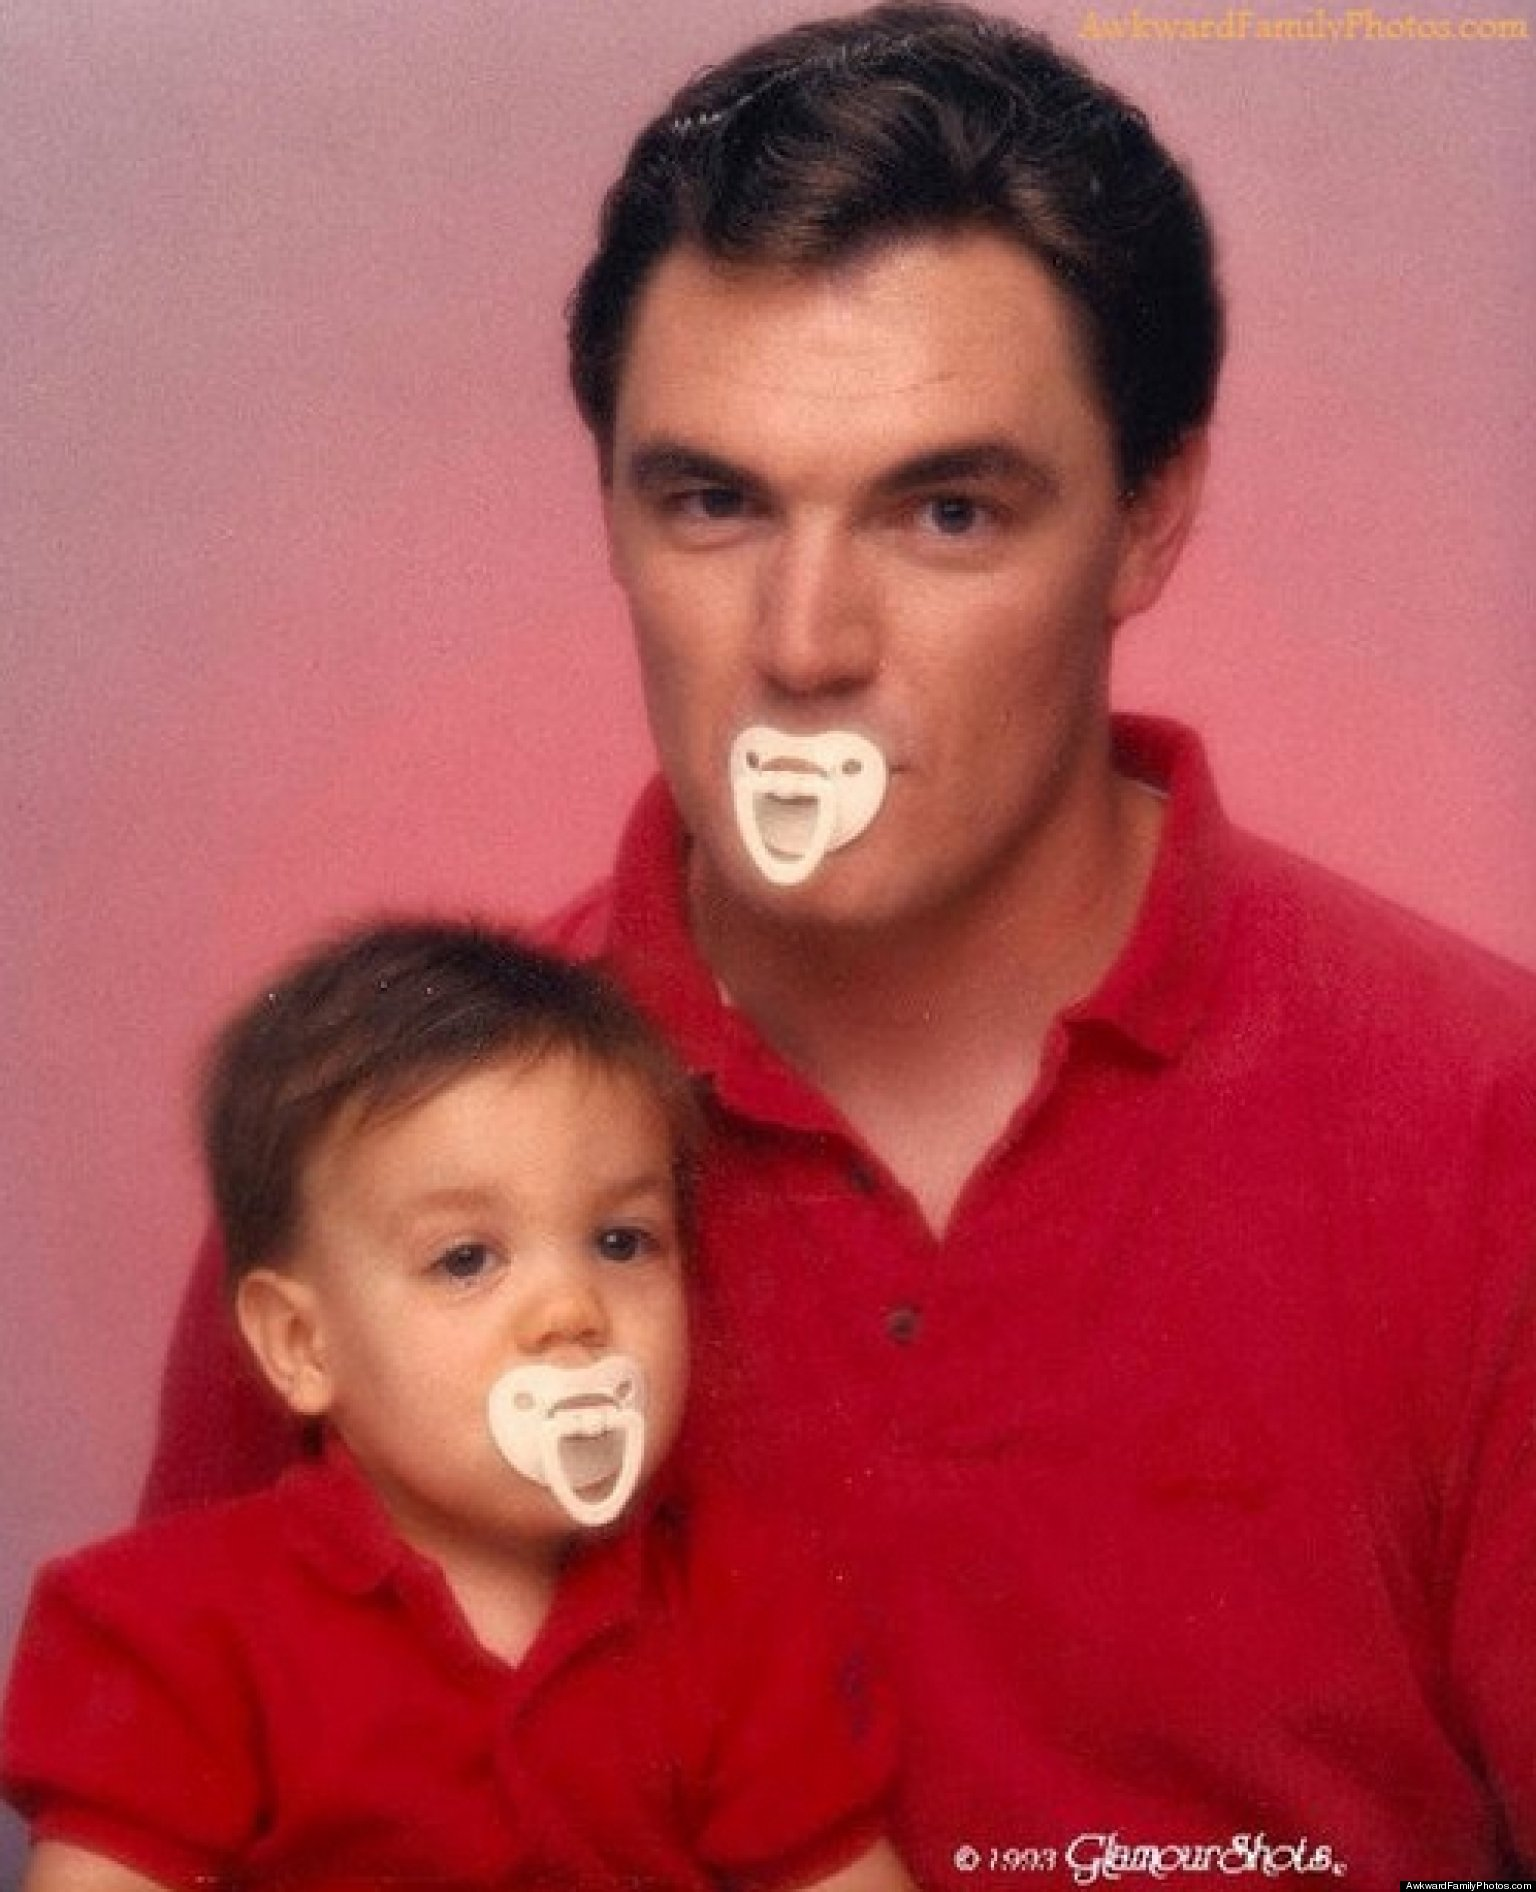 Awkward! See photos of these hilarious dads - TODAY.com